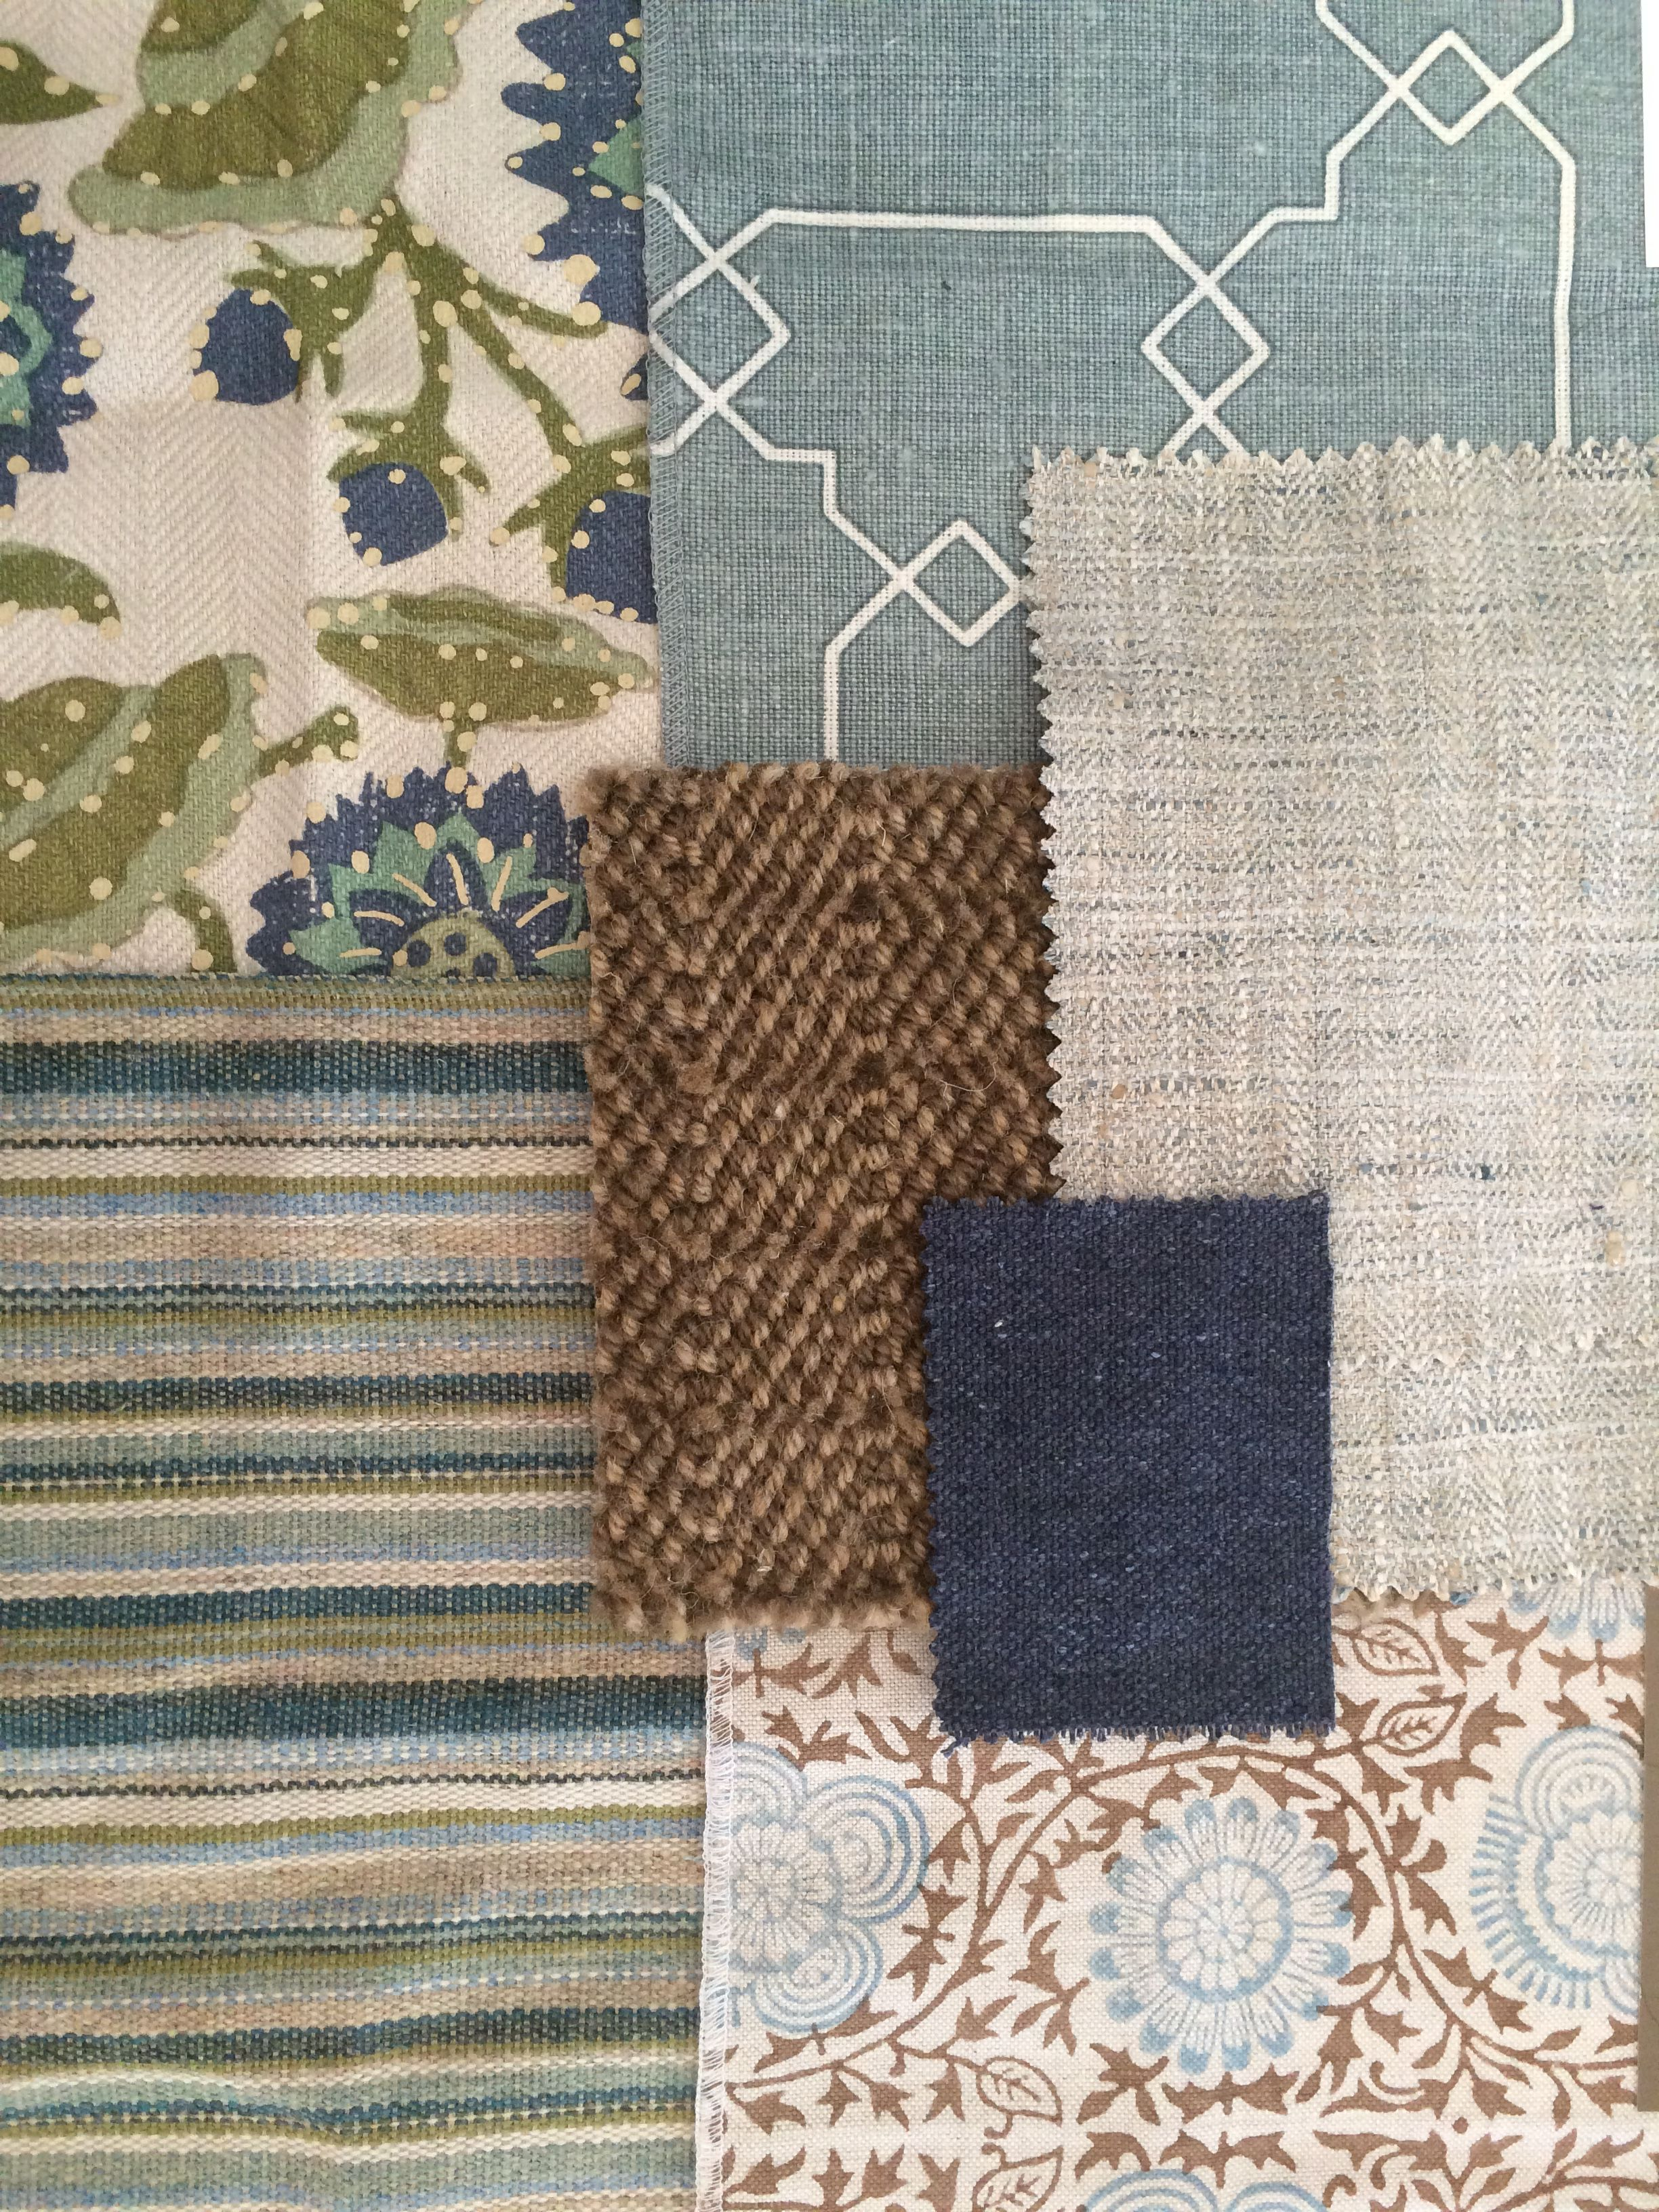 Artsandhomes Interior Design Fabric Combination Patterns Home Decor Blue And Green Cowtan Tout Peter Fasano Kerry Joyce Karastan